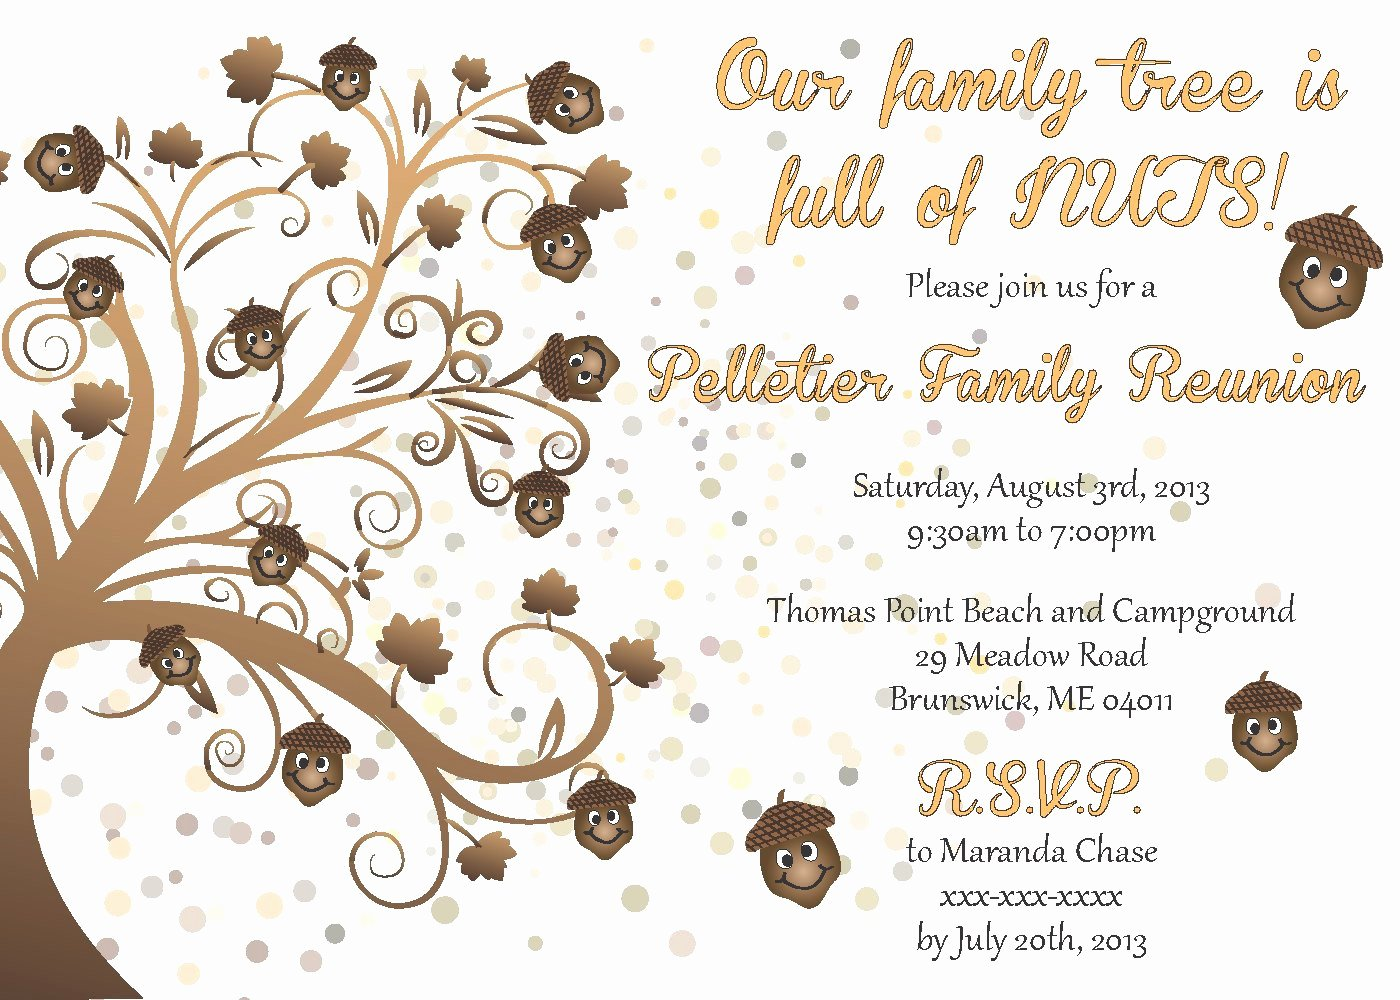 Family Reunion Newsletter Template Elegant Family Reunion Invitation by Littlebopress On Etsy